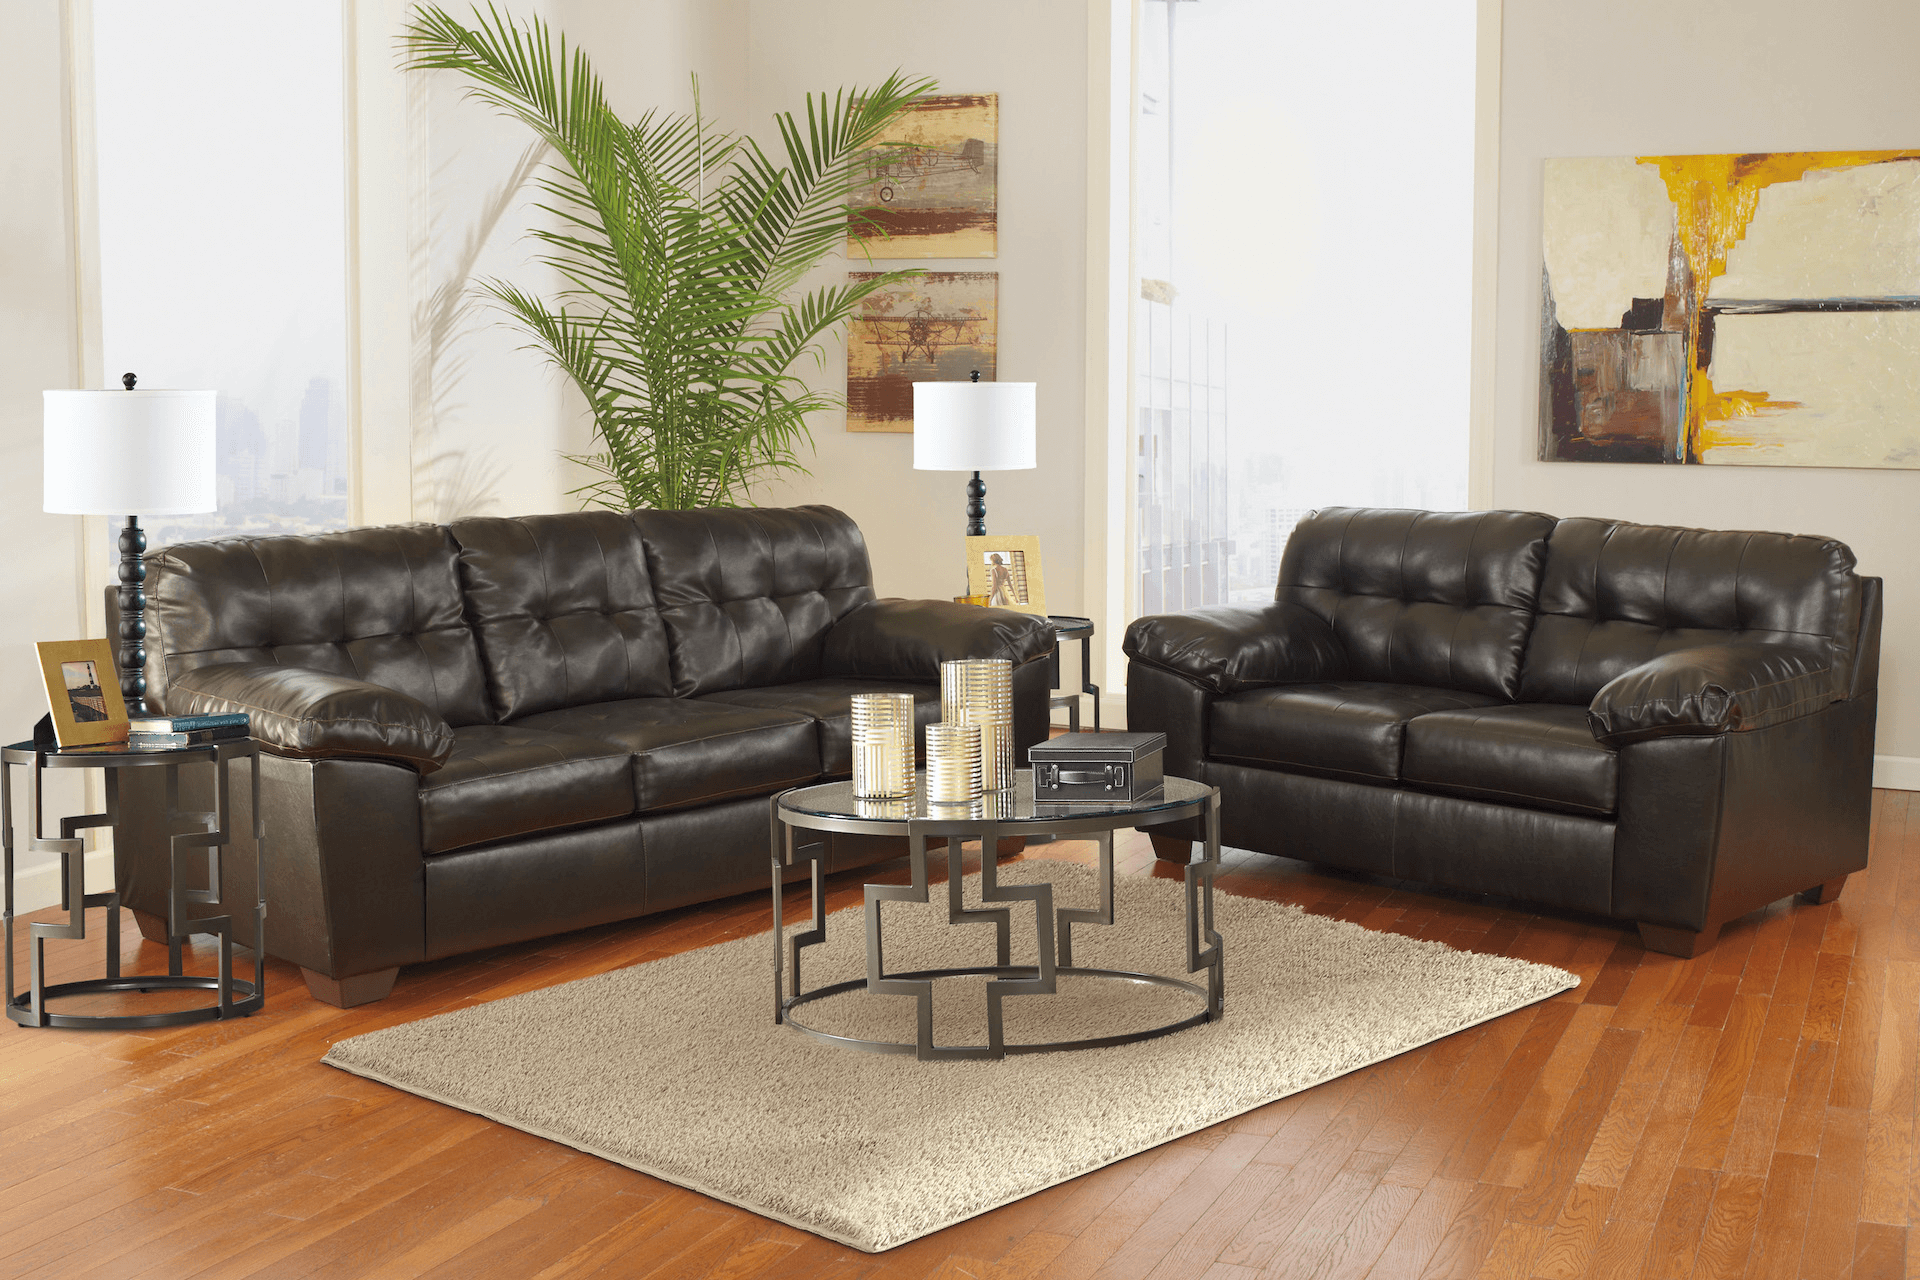 Atlantic_Furniture-Sofa_Sets-20101_T138_hi-res